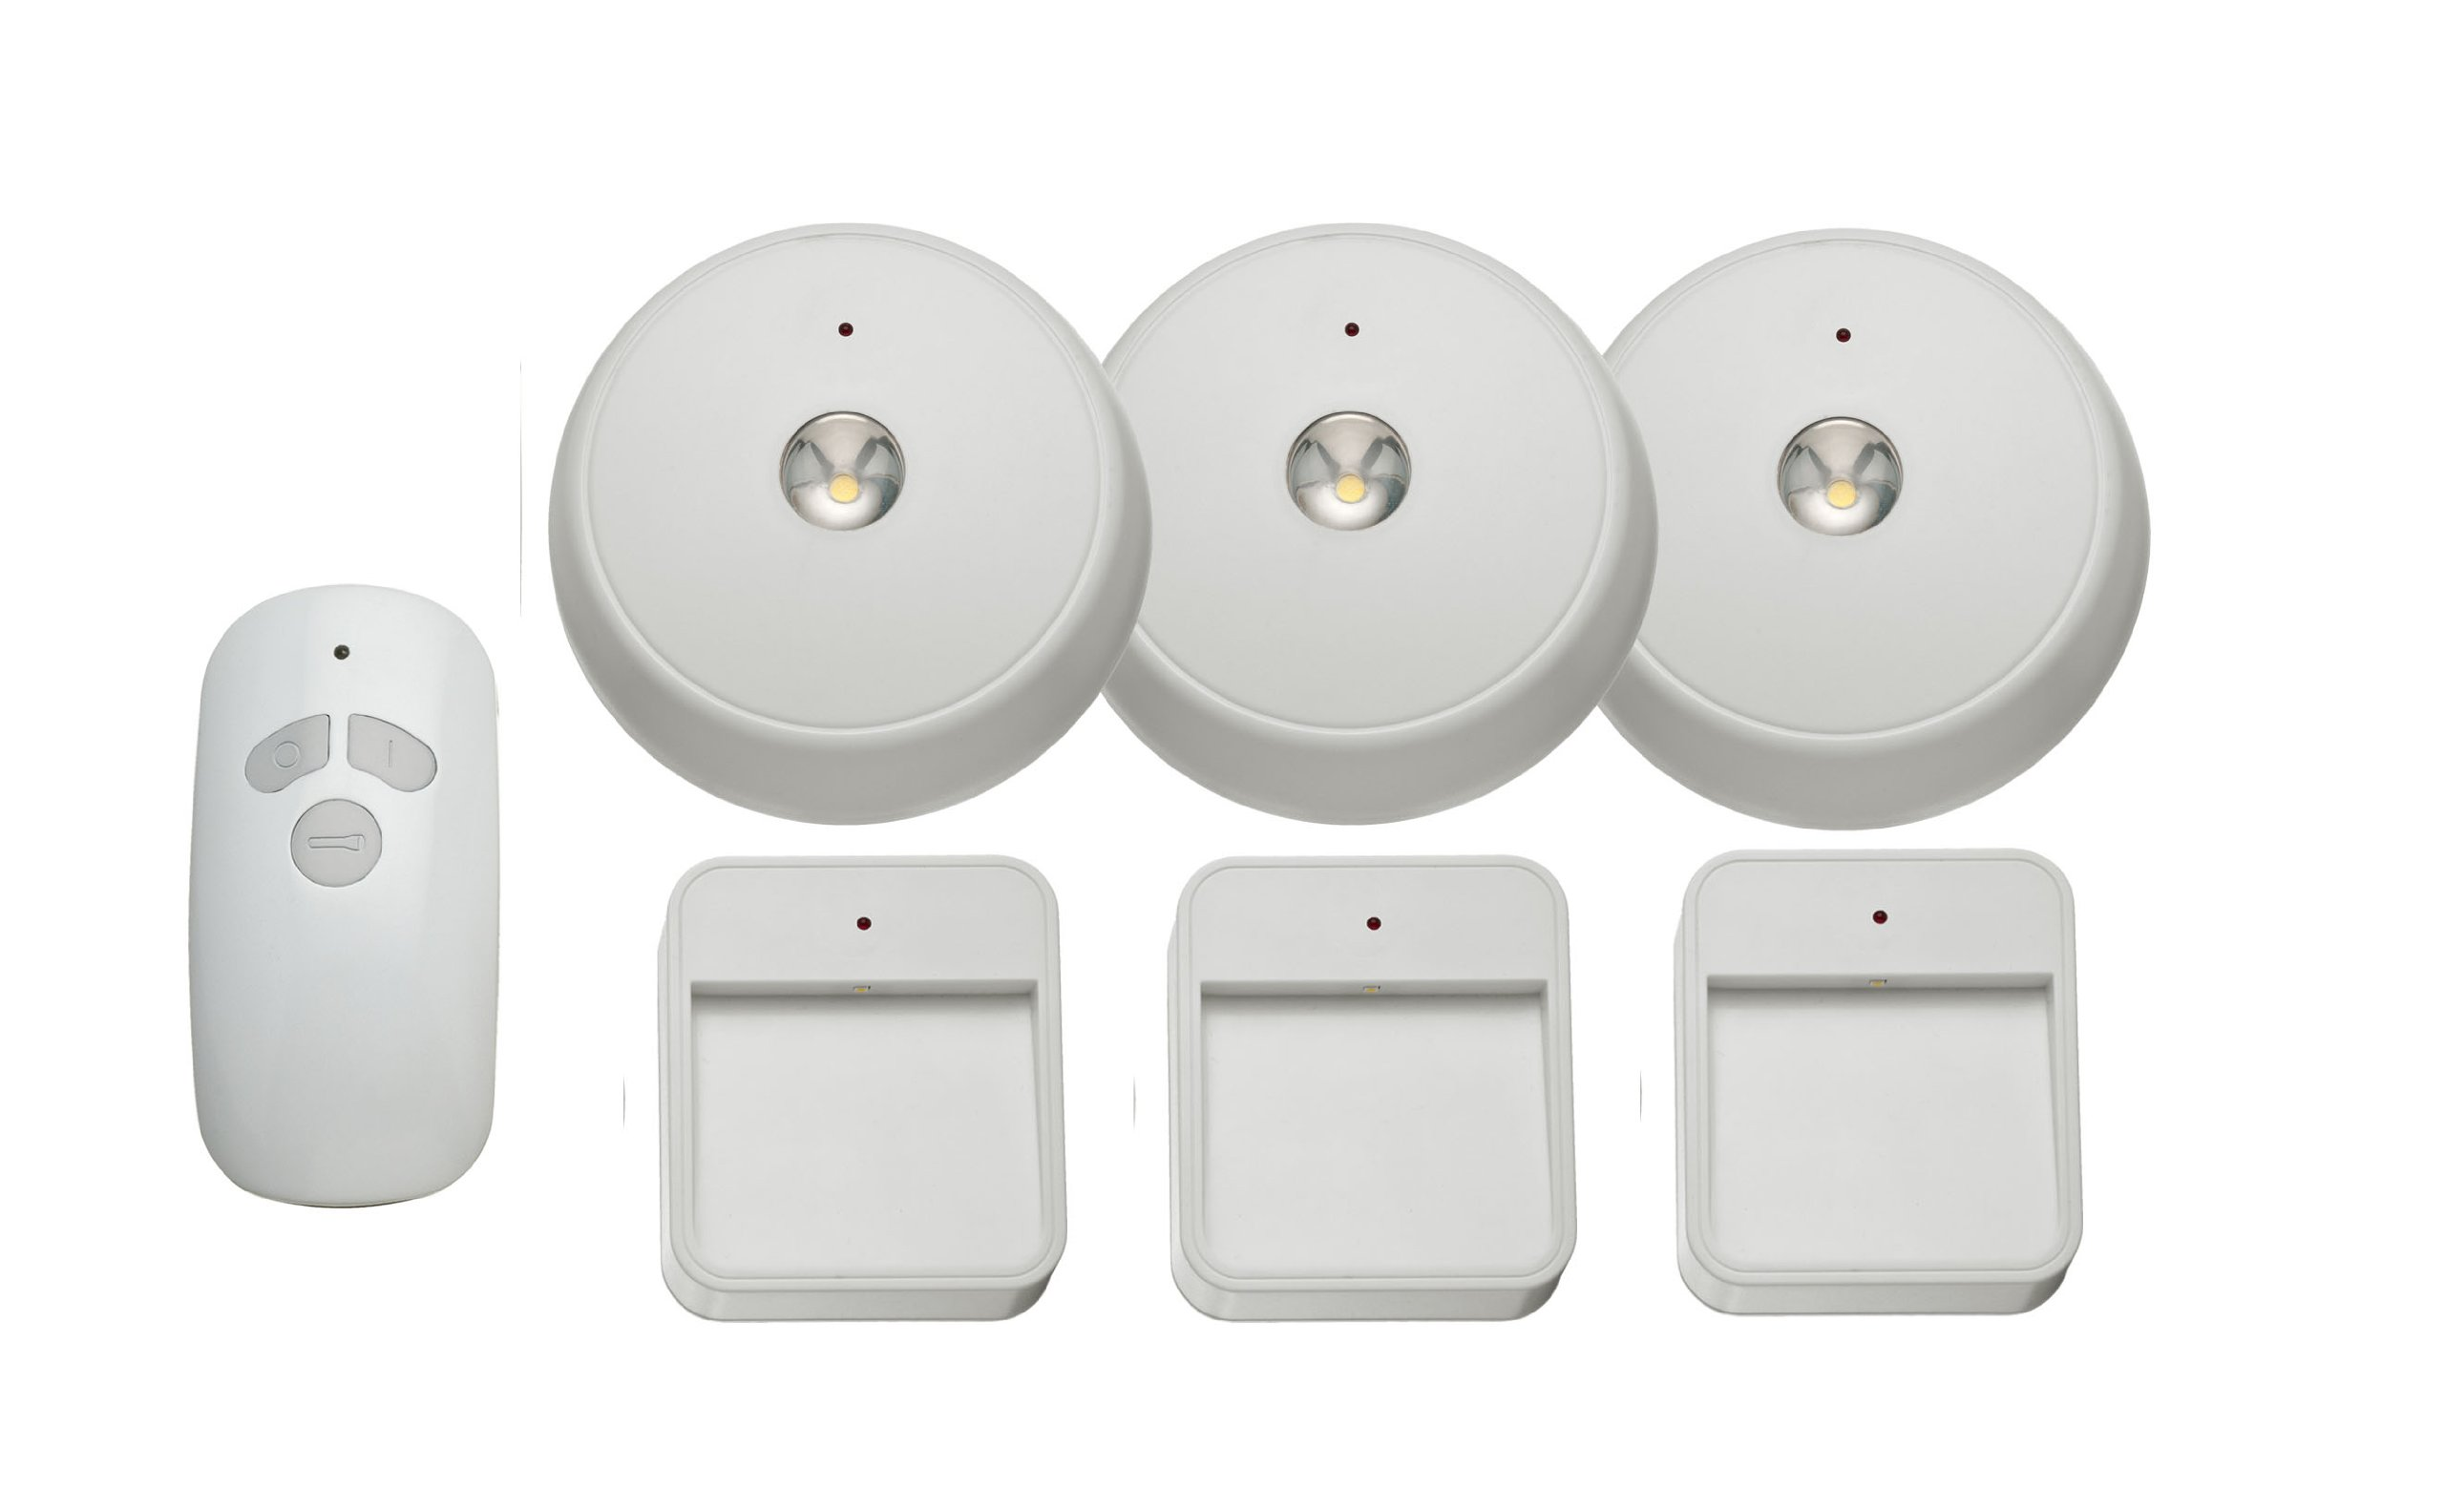 Mr. Beams MB280 ReadyBright Wireless Power Outage LED Whole House Lighting System